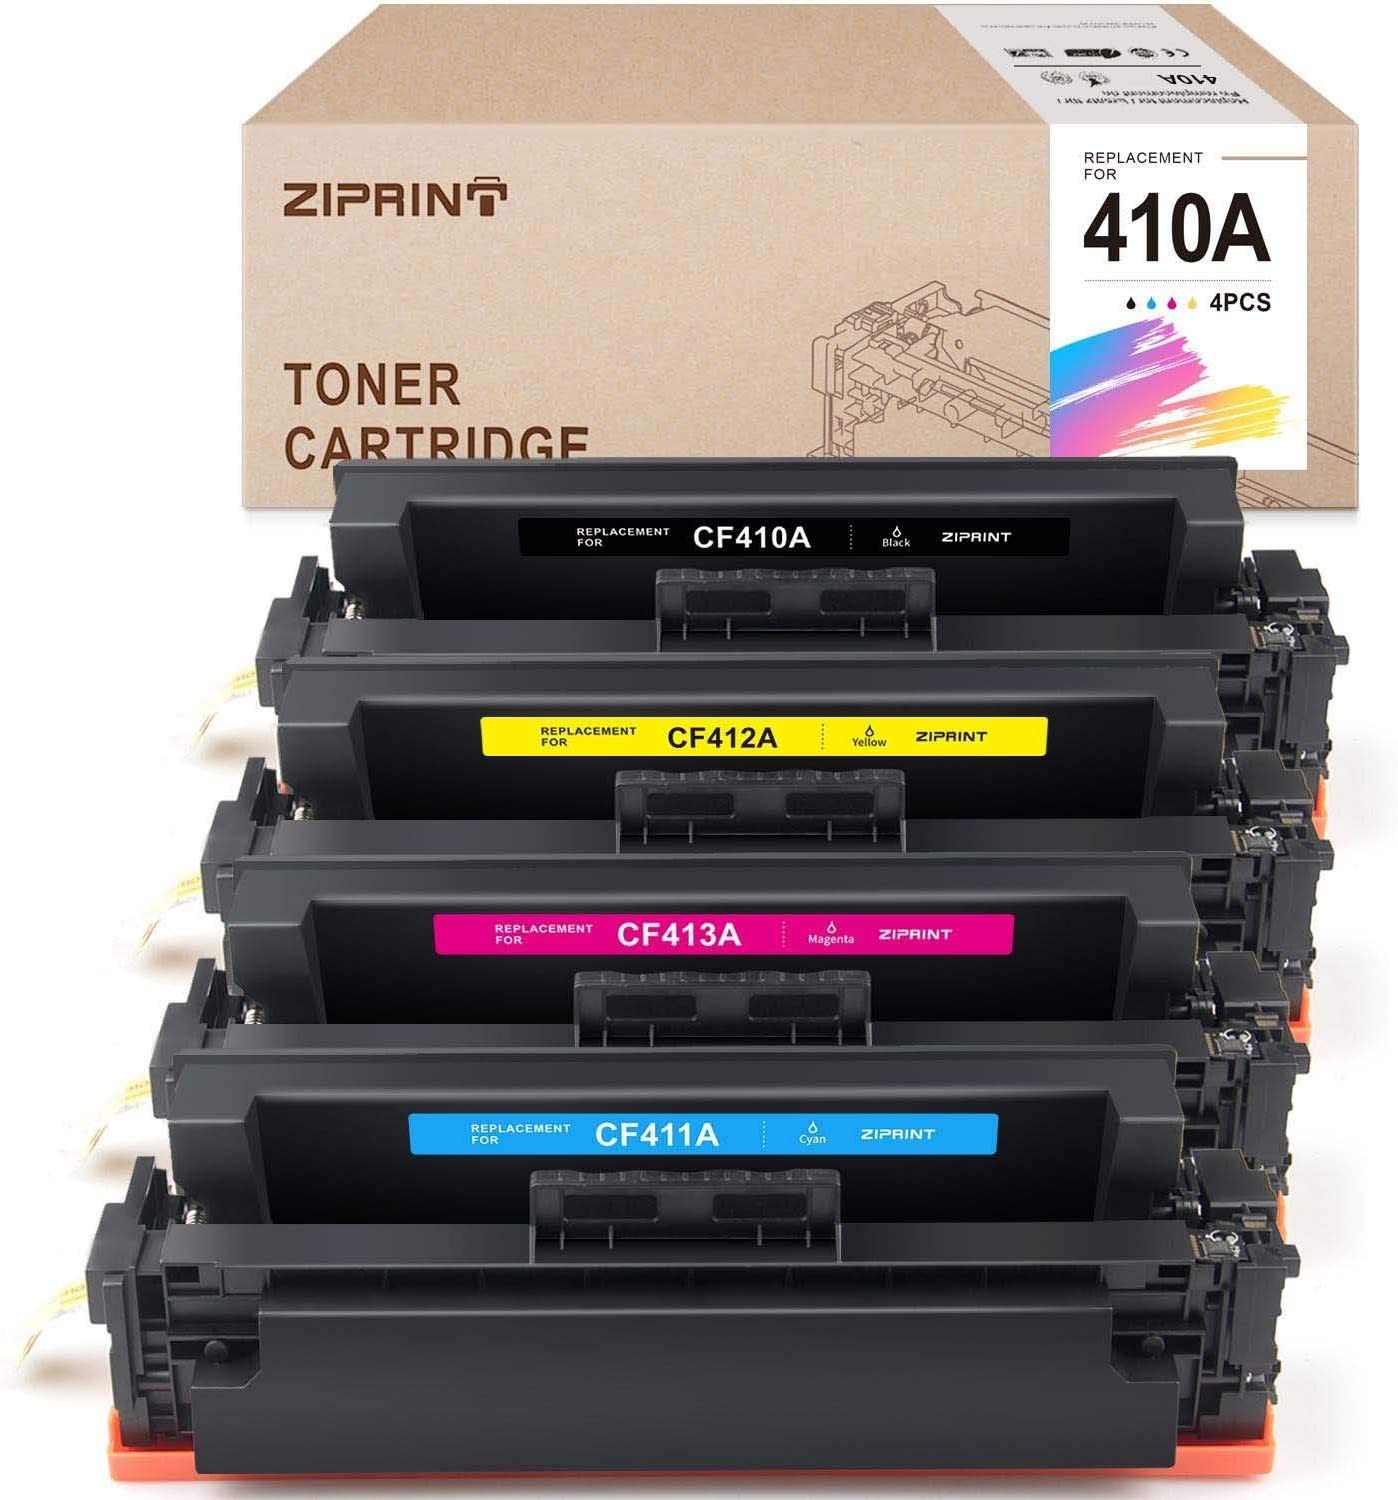 ZIPRINT Compatible Toner Cartridge Replacement for HP CF410A 410A CF410X 410X for HP Color Laserjet Pro MFP M477fnw M477fdw M477fdn Pro M452dn M452nw M452dw M377dw Printer CF410A CF411A CF412A CF413A